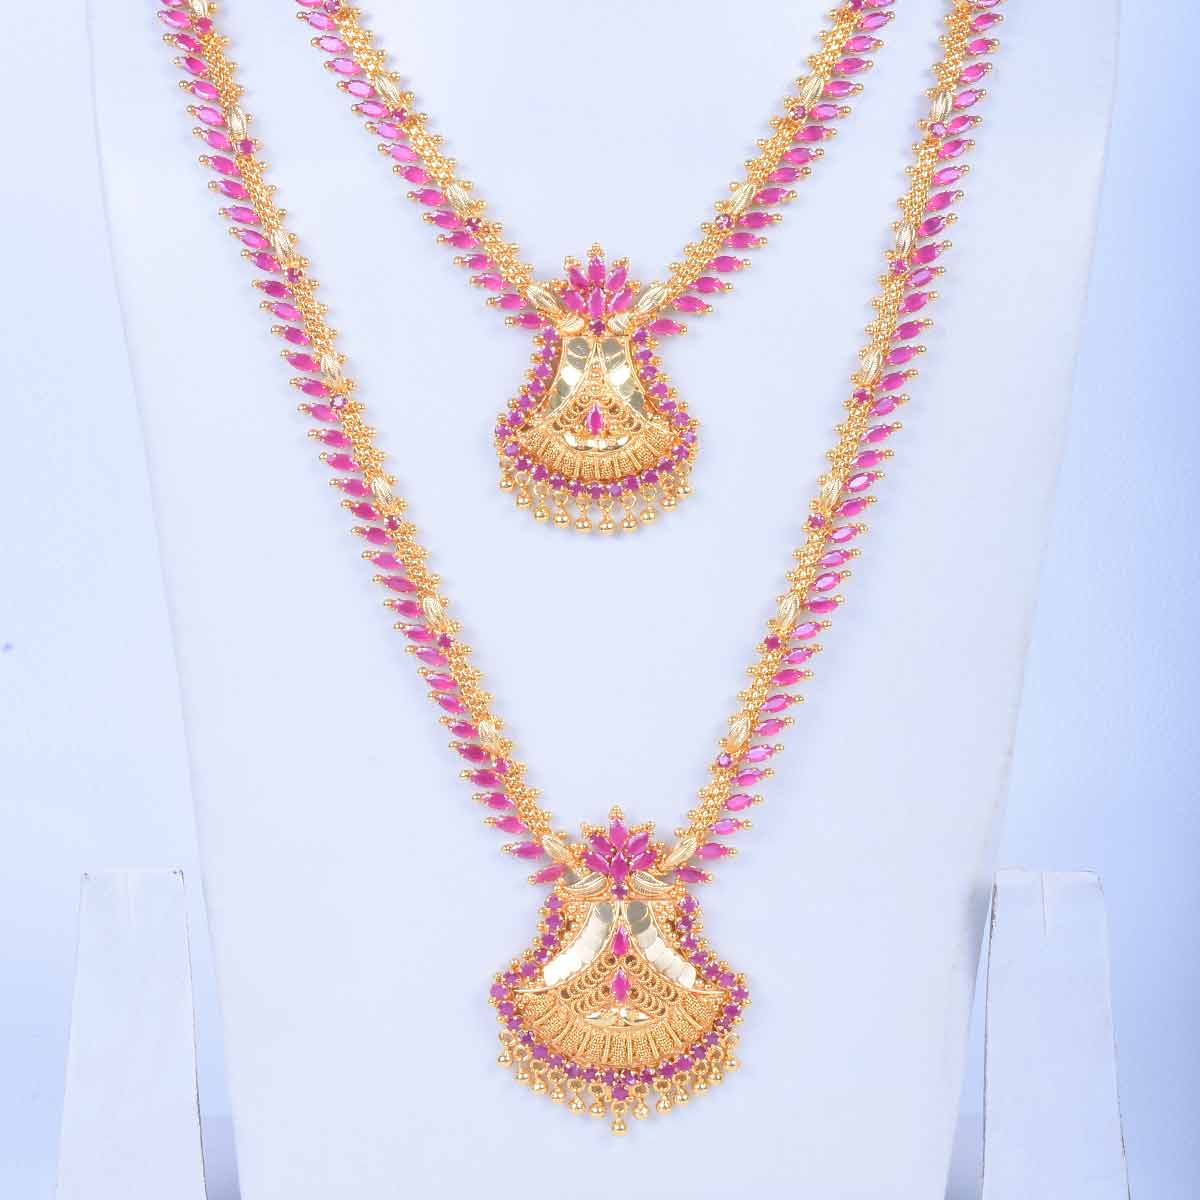 31d596c34c178e Exquisite gold-plated long haram necklace set with ruby cubic zirconia  stones for women.